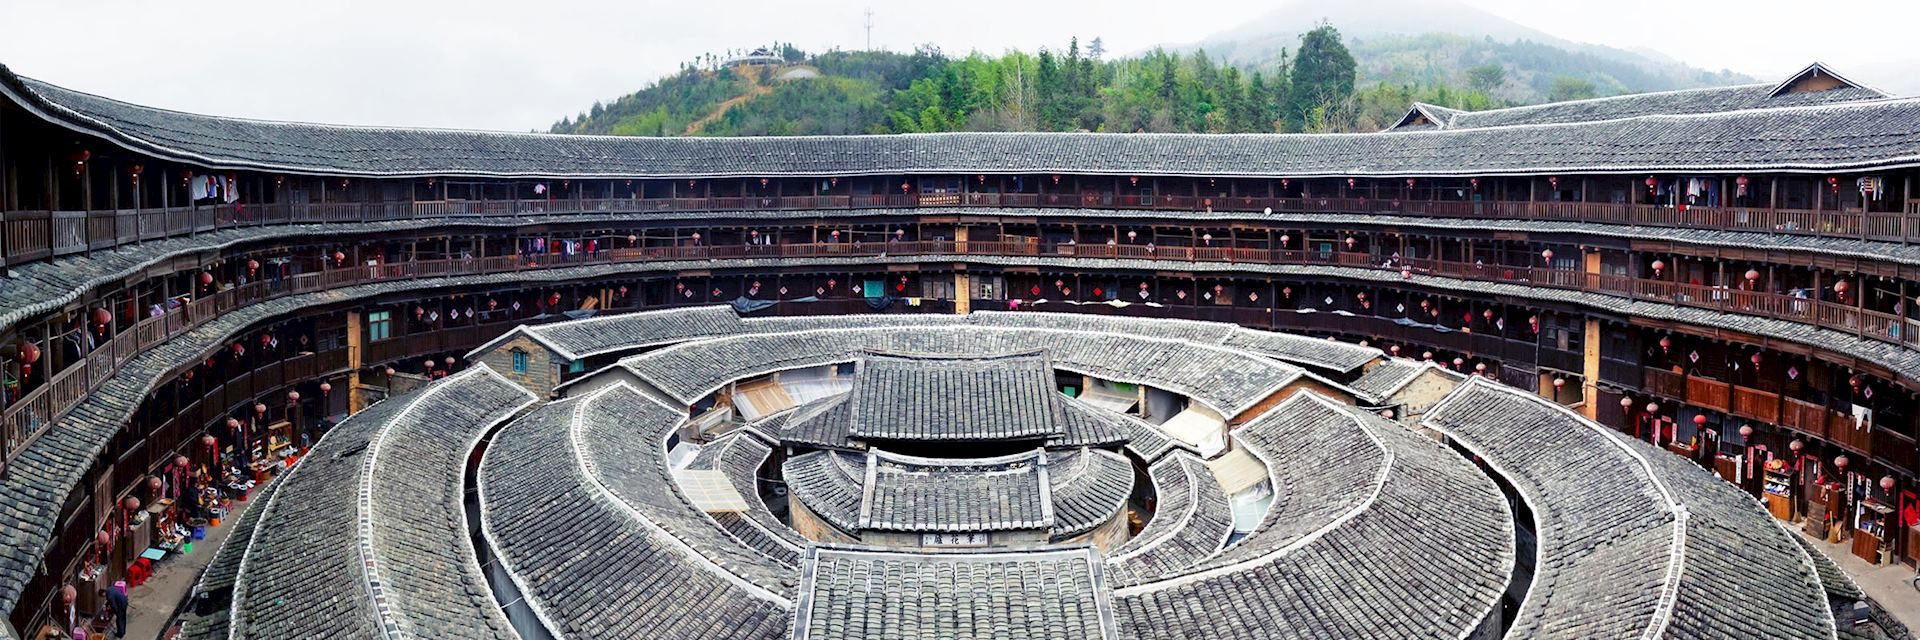 Fujian tulou homes, Xiamen, China